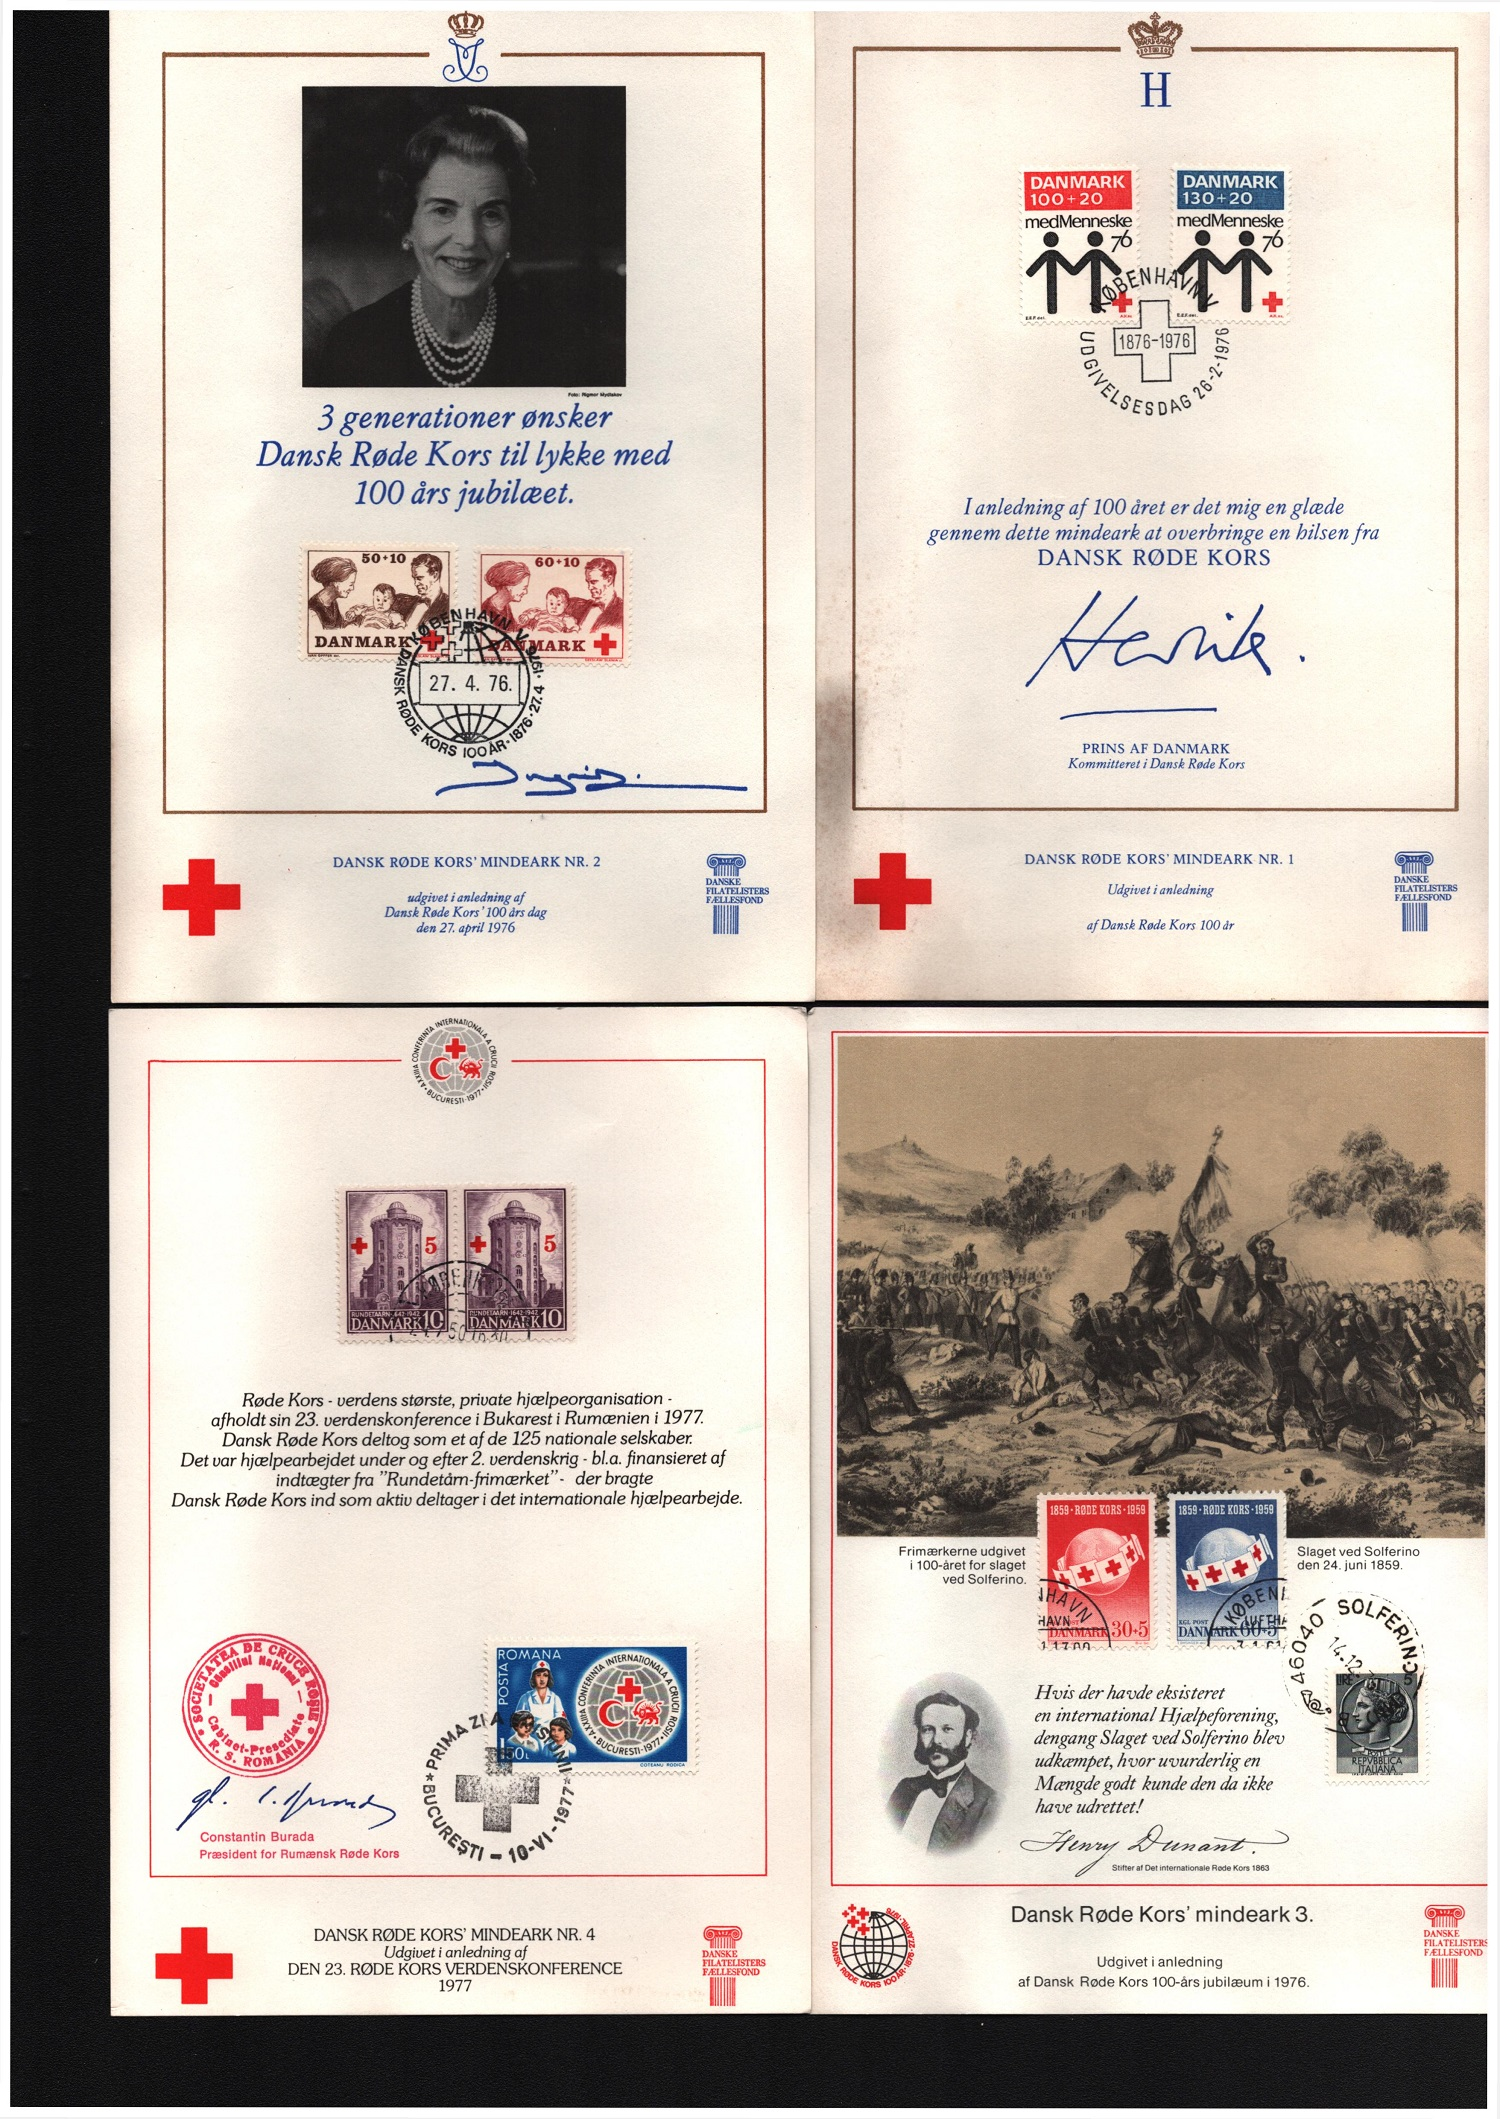 Assorted collection. Includes 11 postcards from Denmark mint, 2 postcards Denmark franked. 4 Red